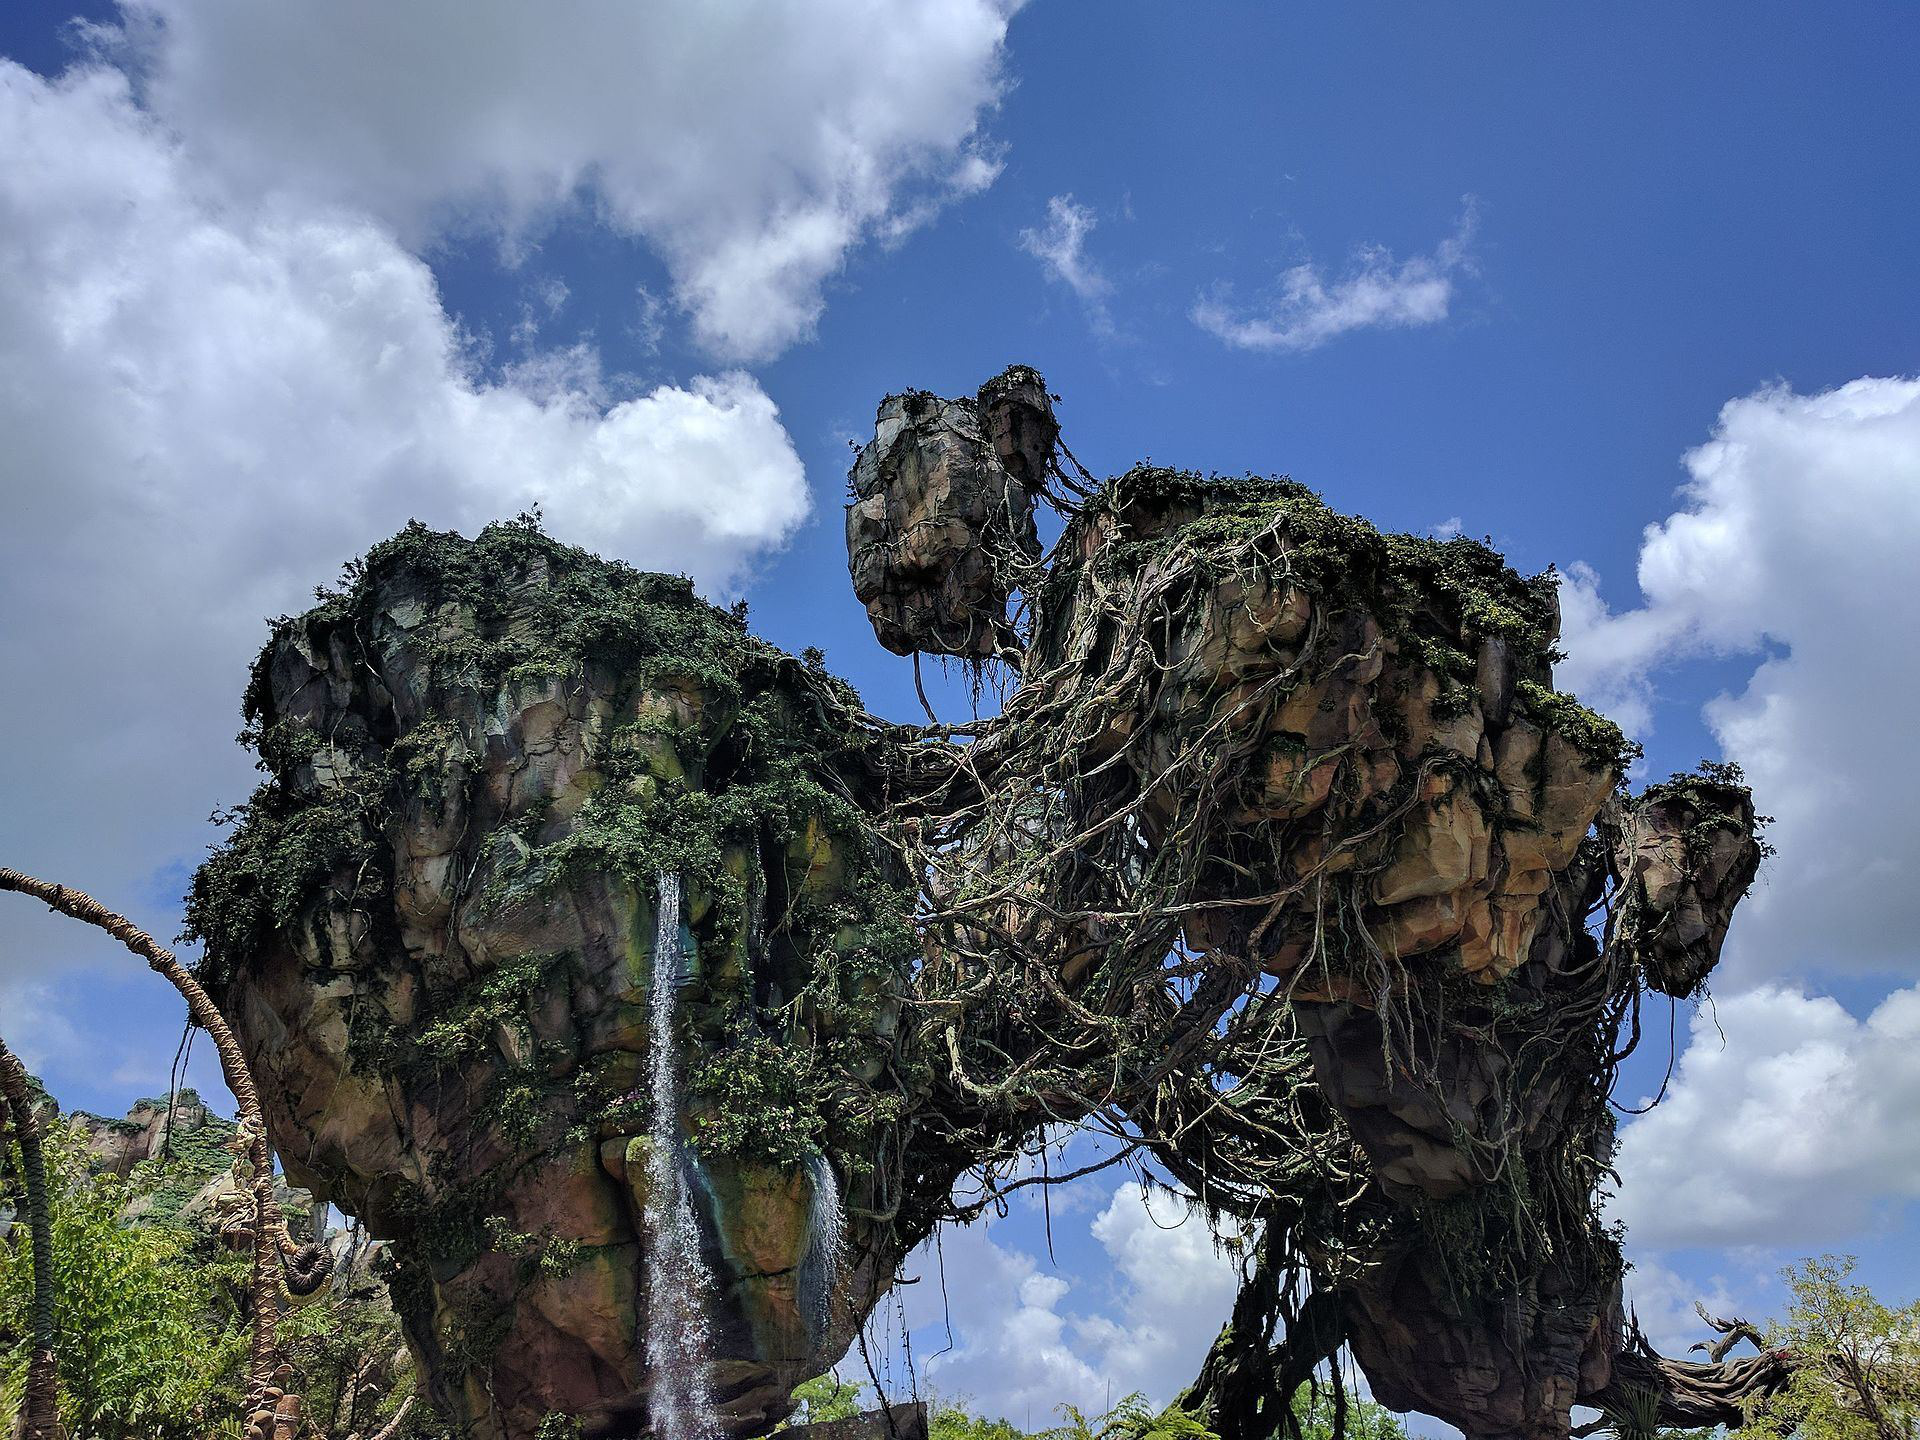 Disney brings Pandora to life with the help of landscaping